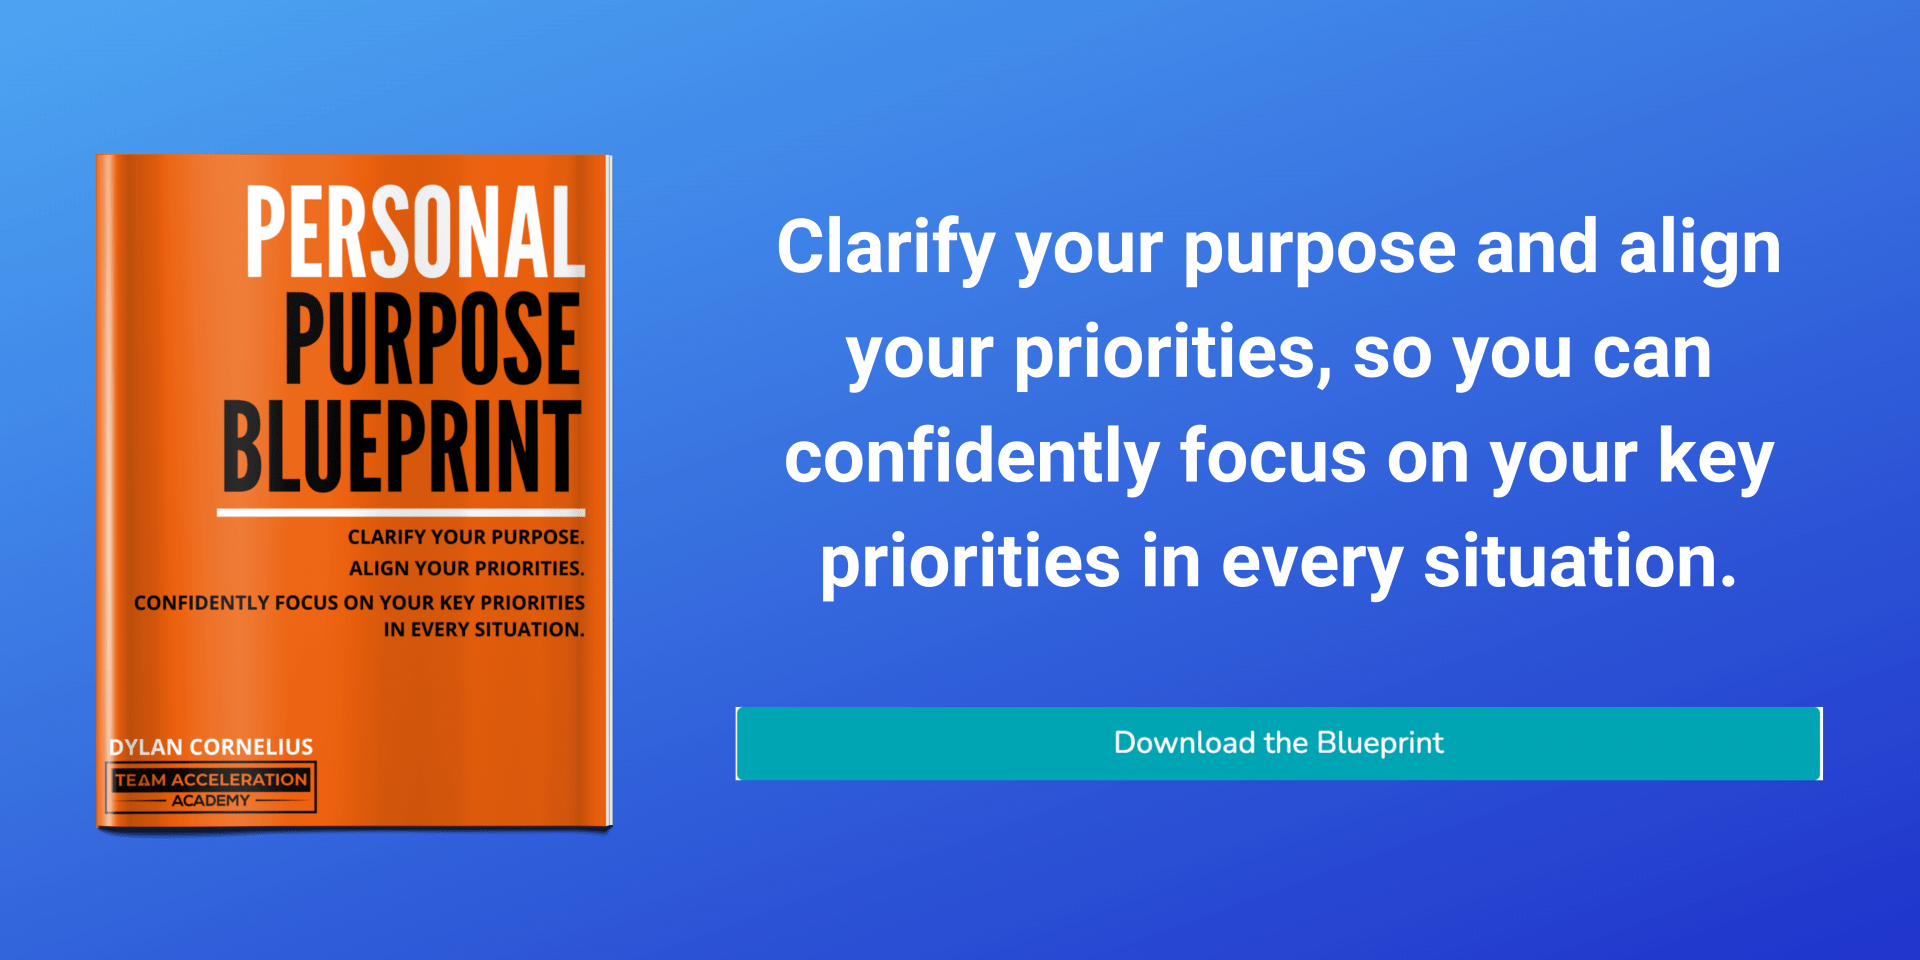 Find your purpose in life. Clarify your purpose and align your priorities so you can confidently focus on your key priorities in every situation.